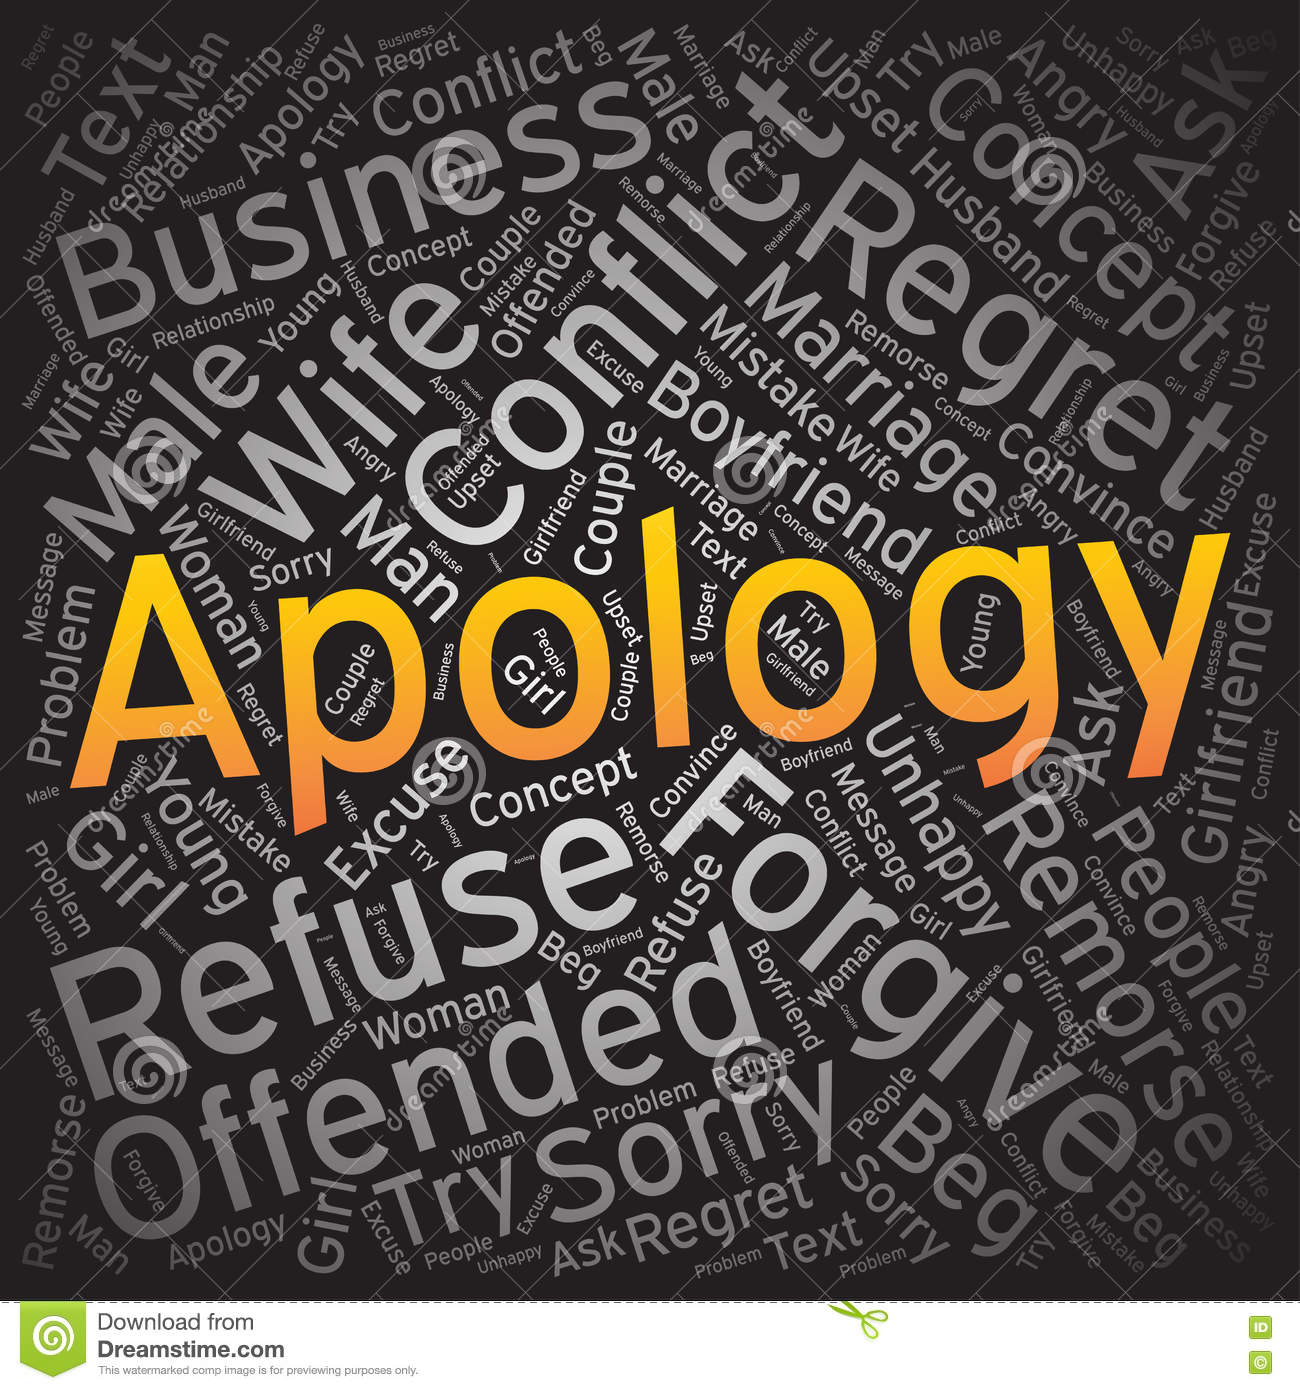 Apology Word Cloud Art Background Stock Vector Illustration of amends modern